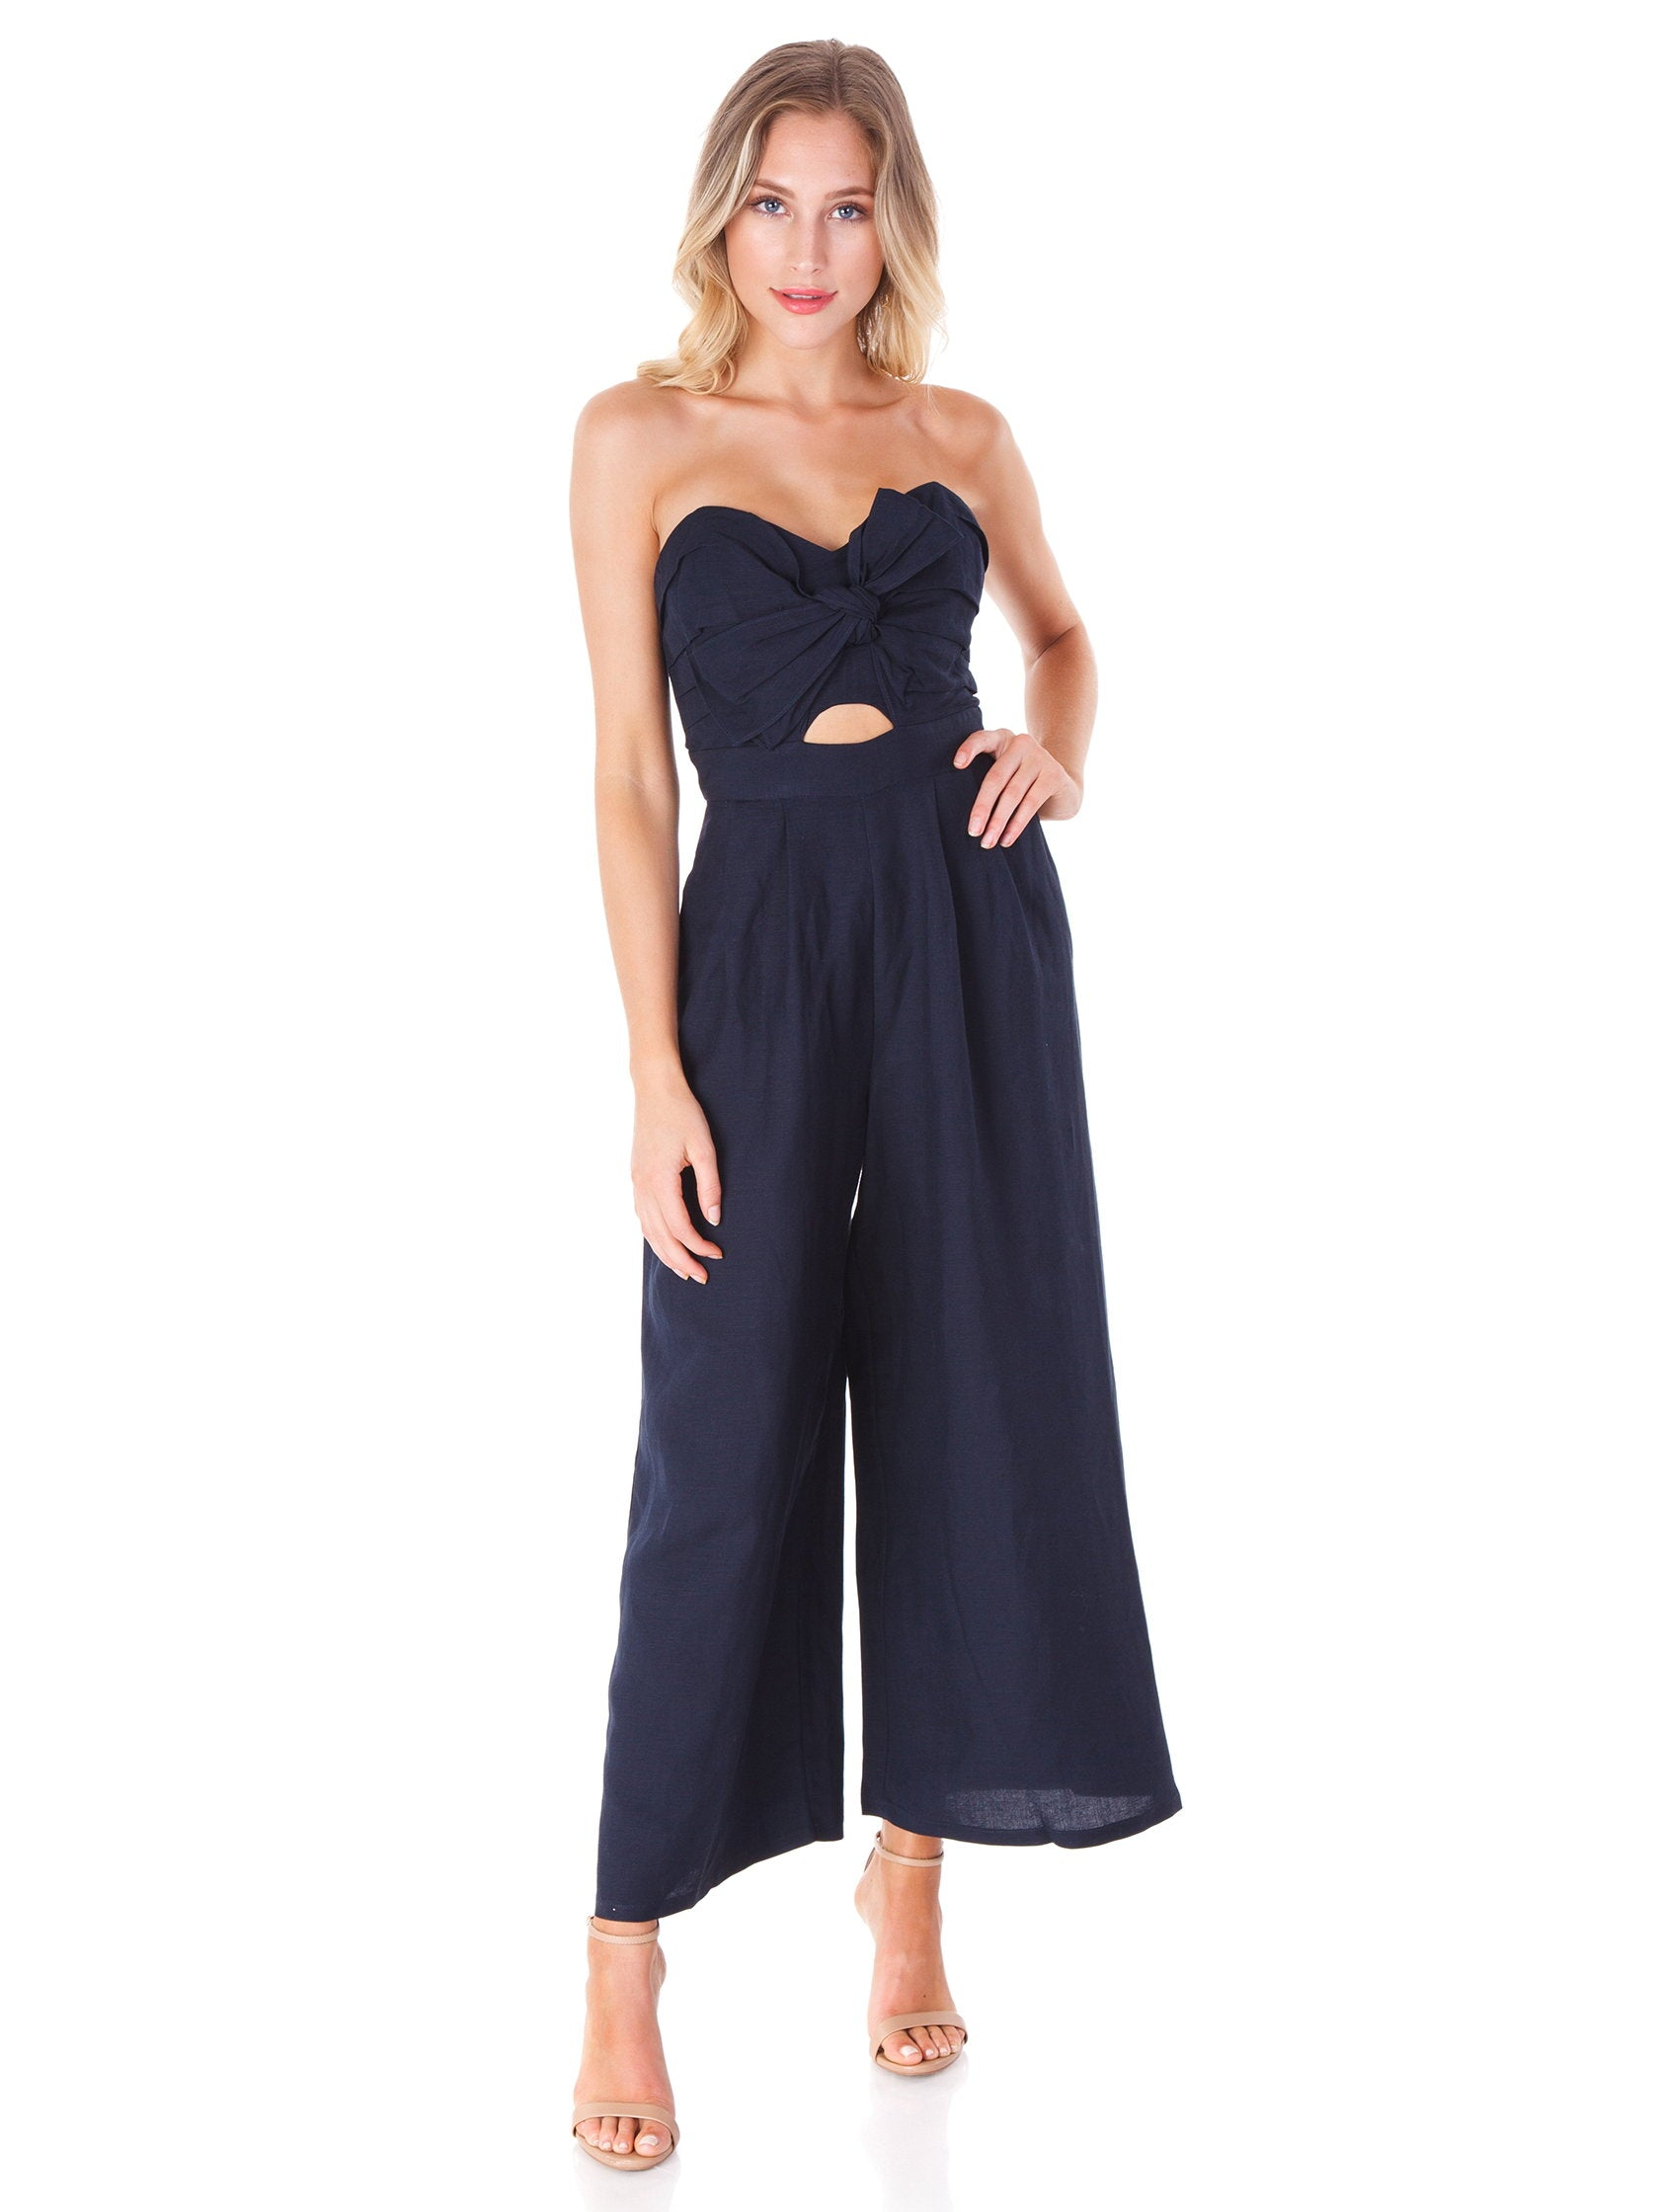 Women outfit in a jumpsuit rental from ASTR called Mara Jumpsuit